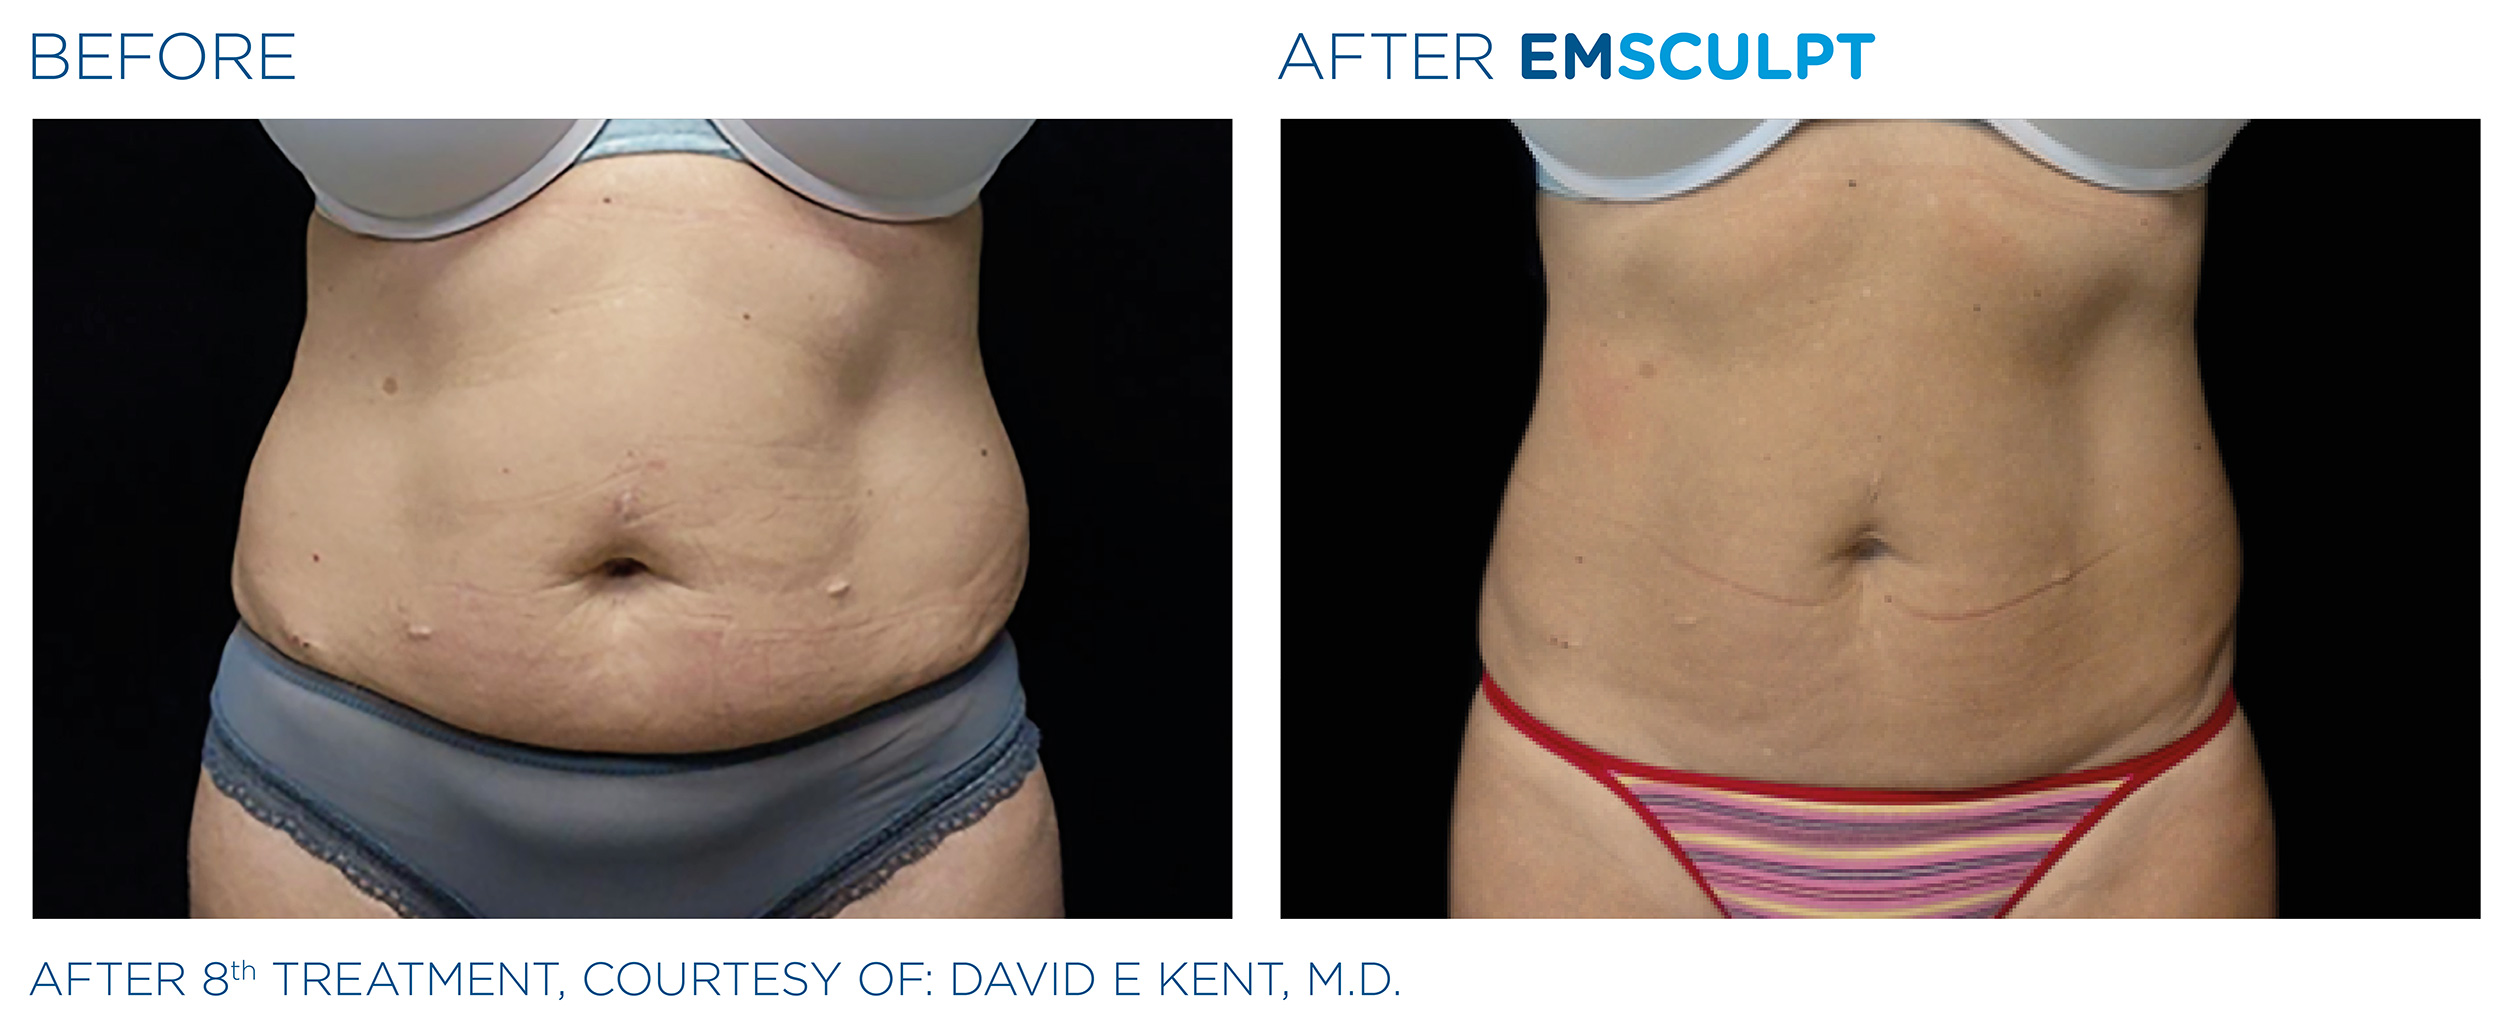 EMSCULPT Before & After Photos | Abdomen 14